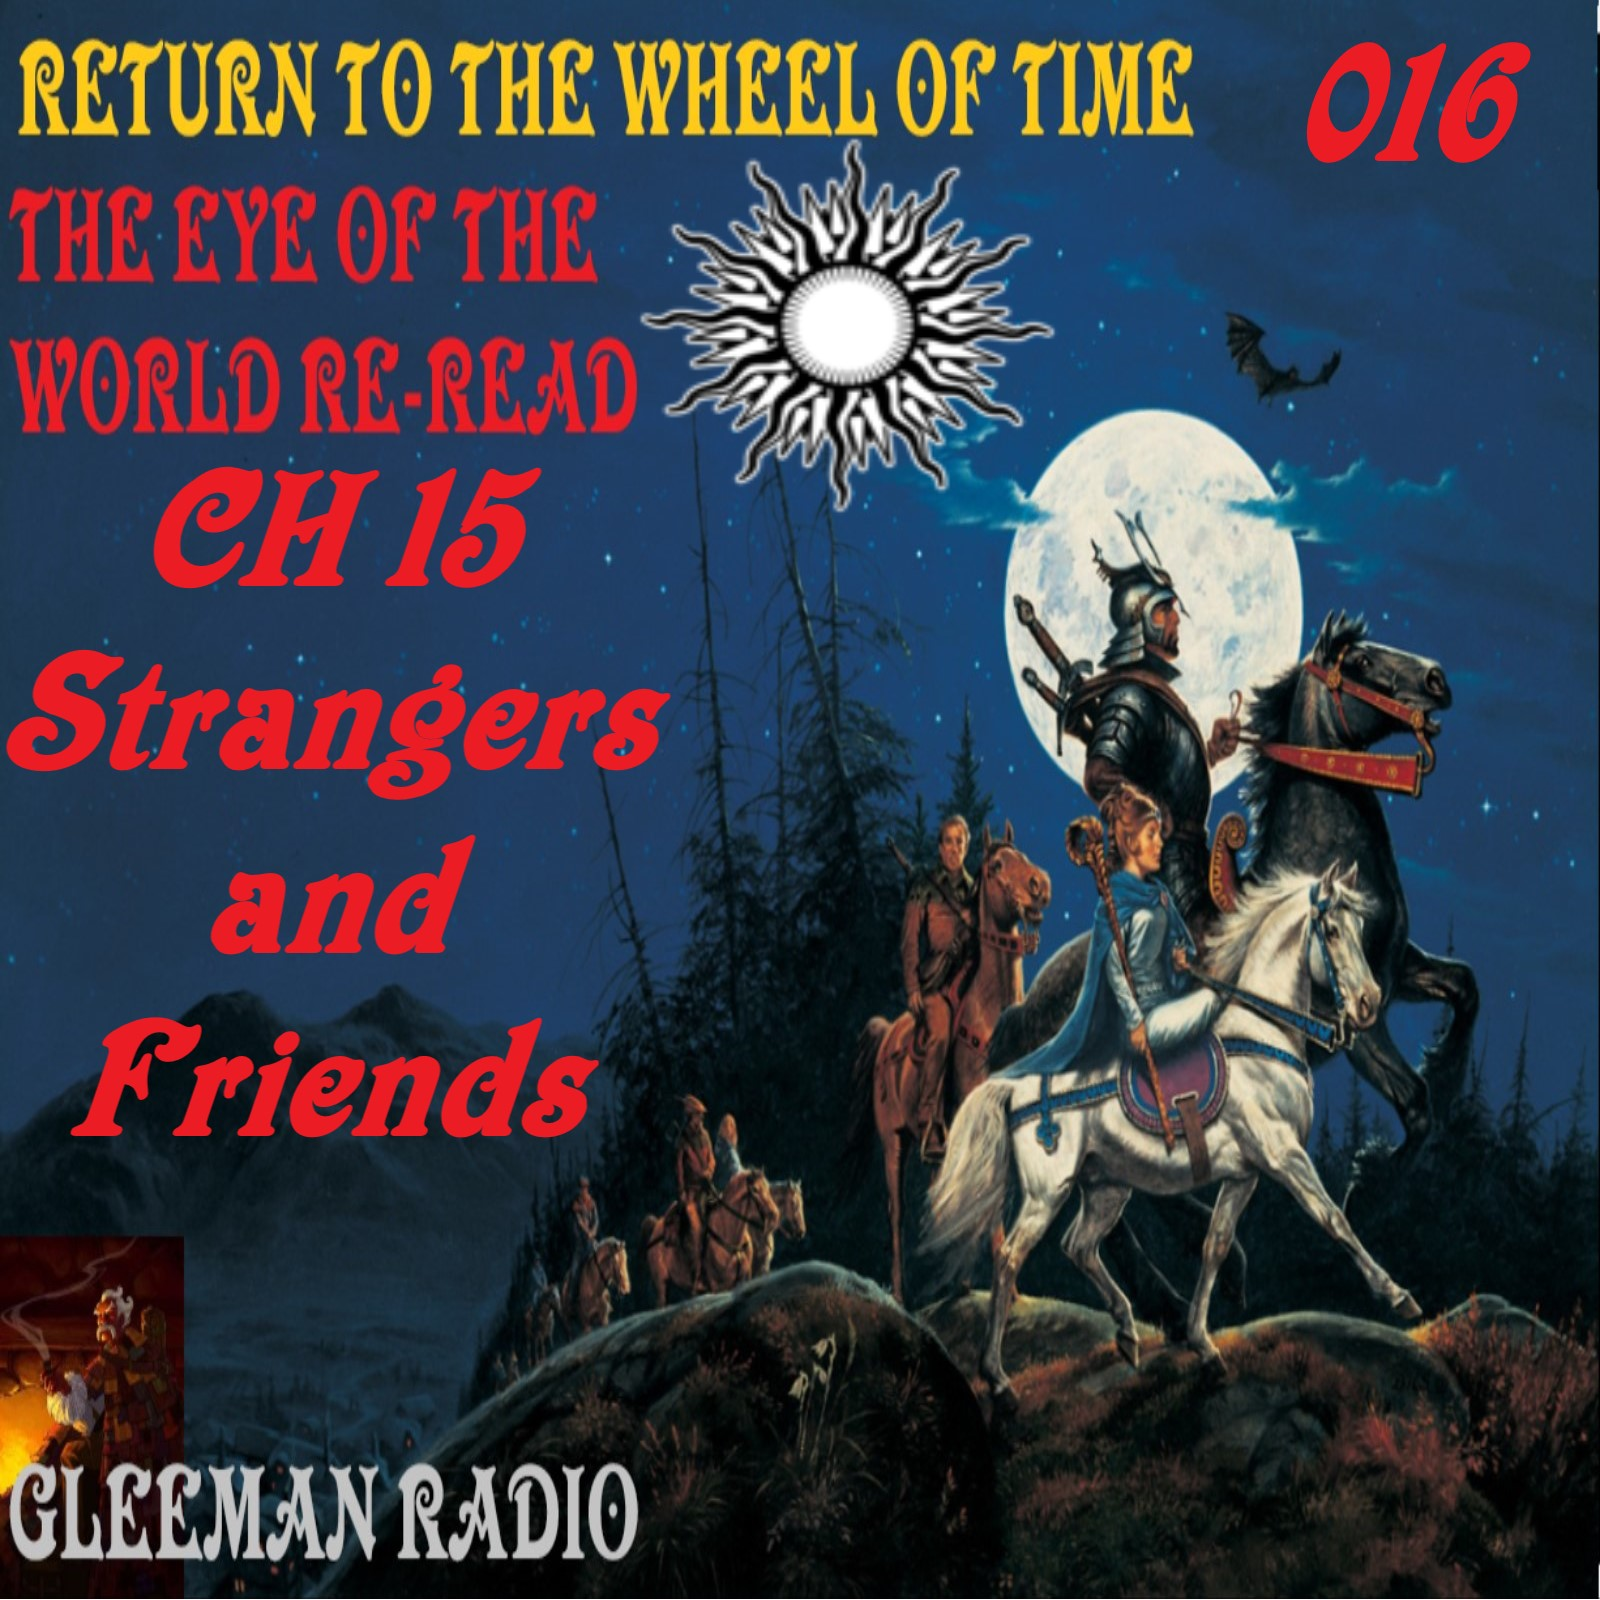 CH 15 - Strangers and Friends - The Eye of the World ReRead - Return to The Wheel of Time Ep. 016